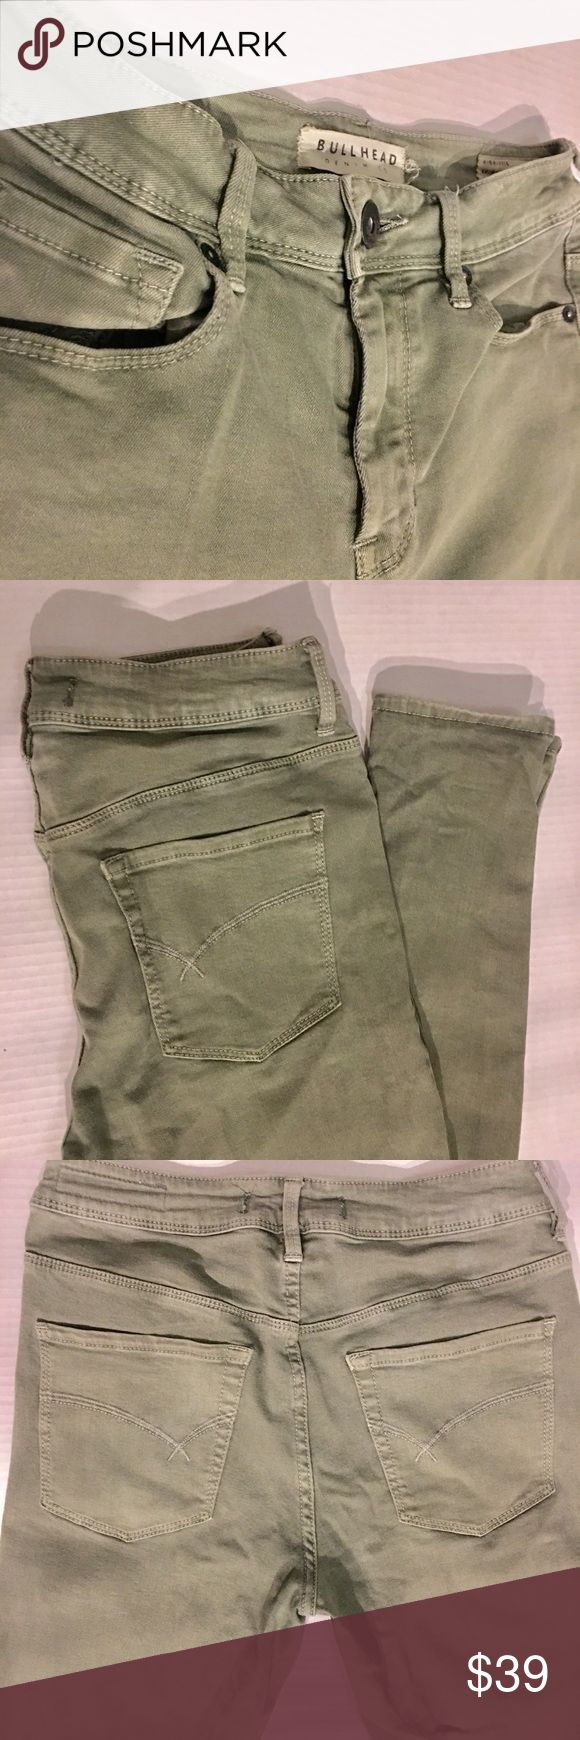 Bullhead Olive Green Skinny Jeans Bullhead Olive Green Skinny Jeans • Excellent Condition • Distressed Customization Available for $10 more • Next Day Shipping ✨✨ Bullhead Jeans Skinny